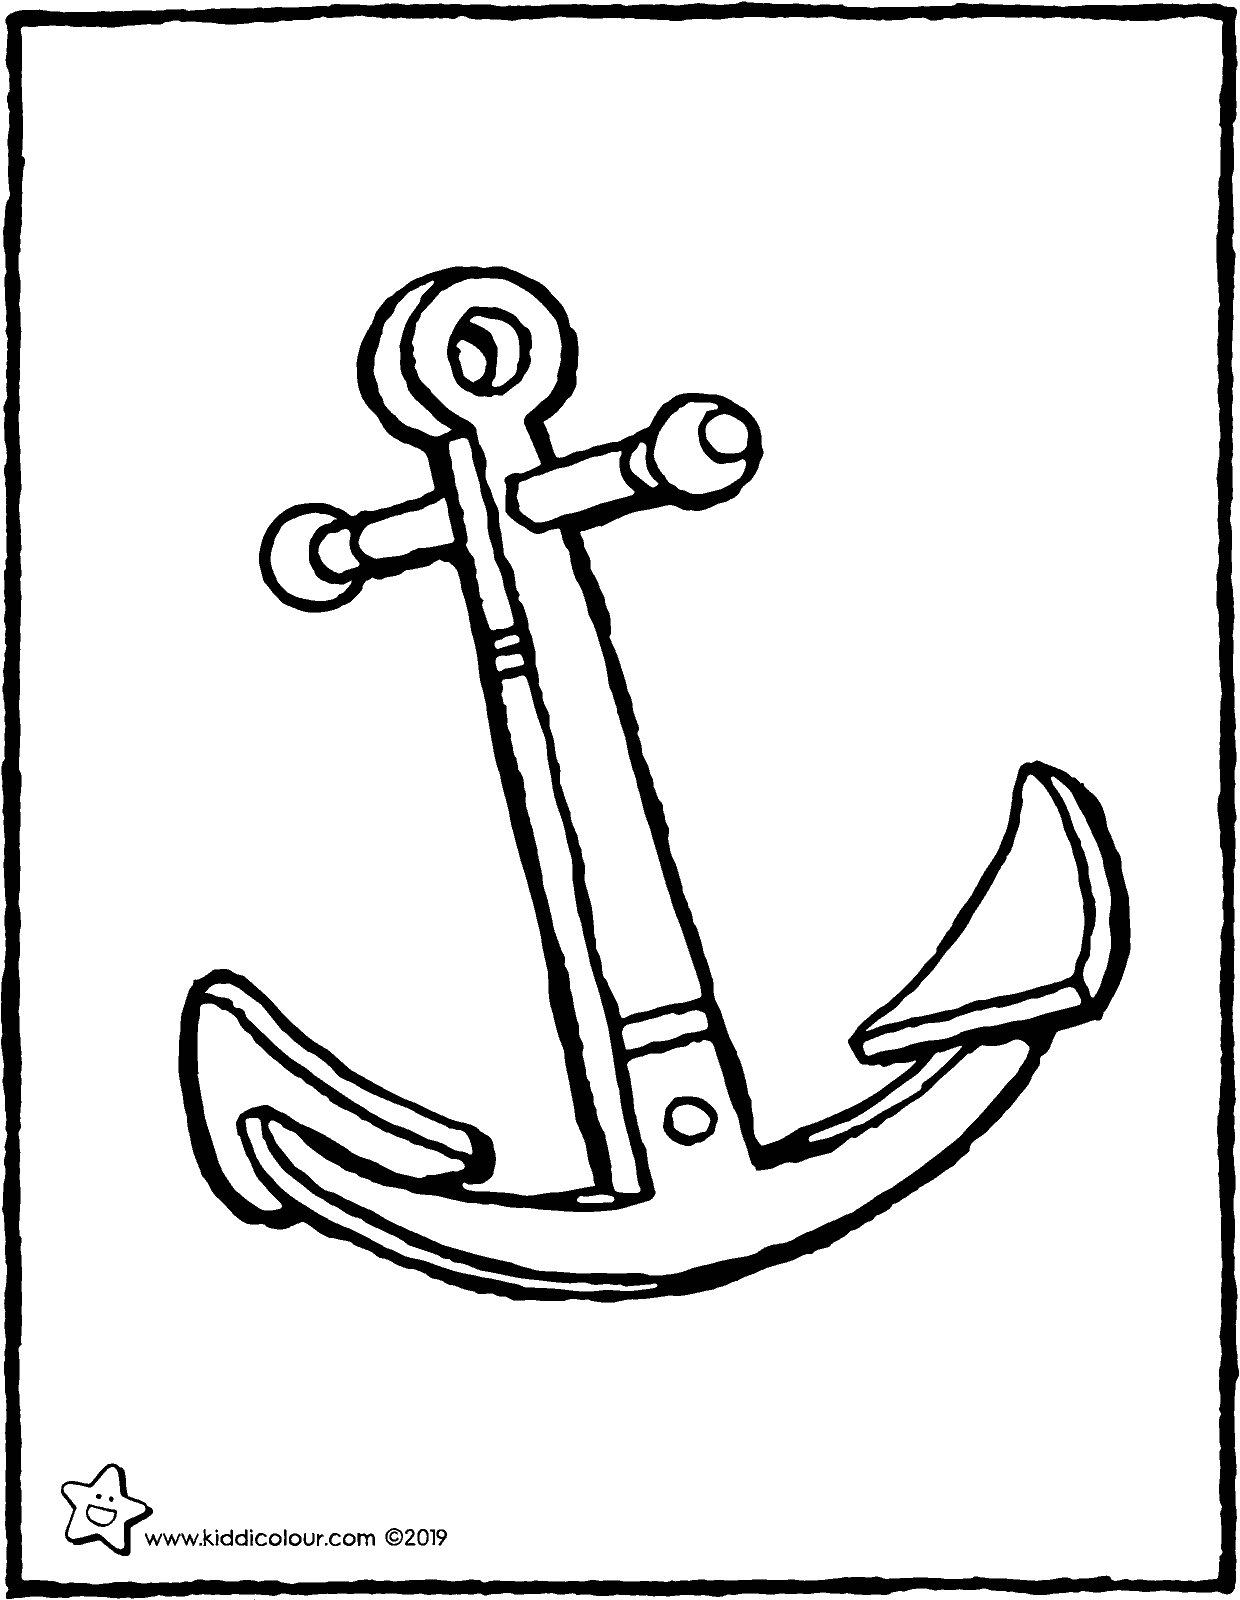 anchor colouring page drawing picture 01V